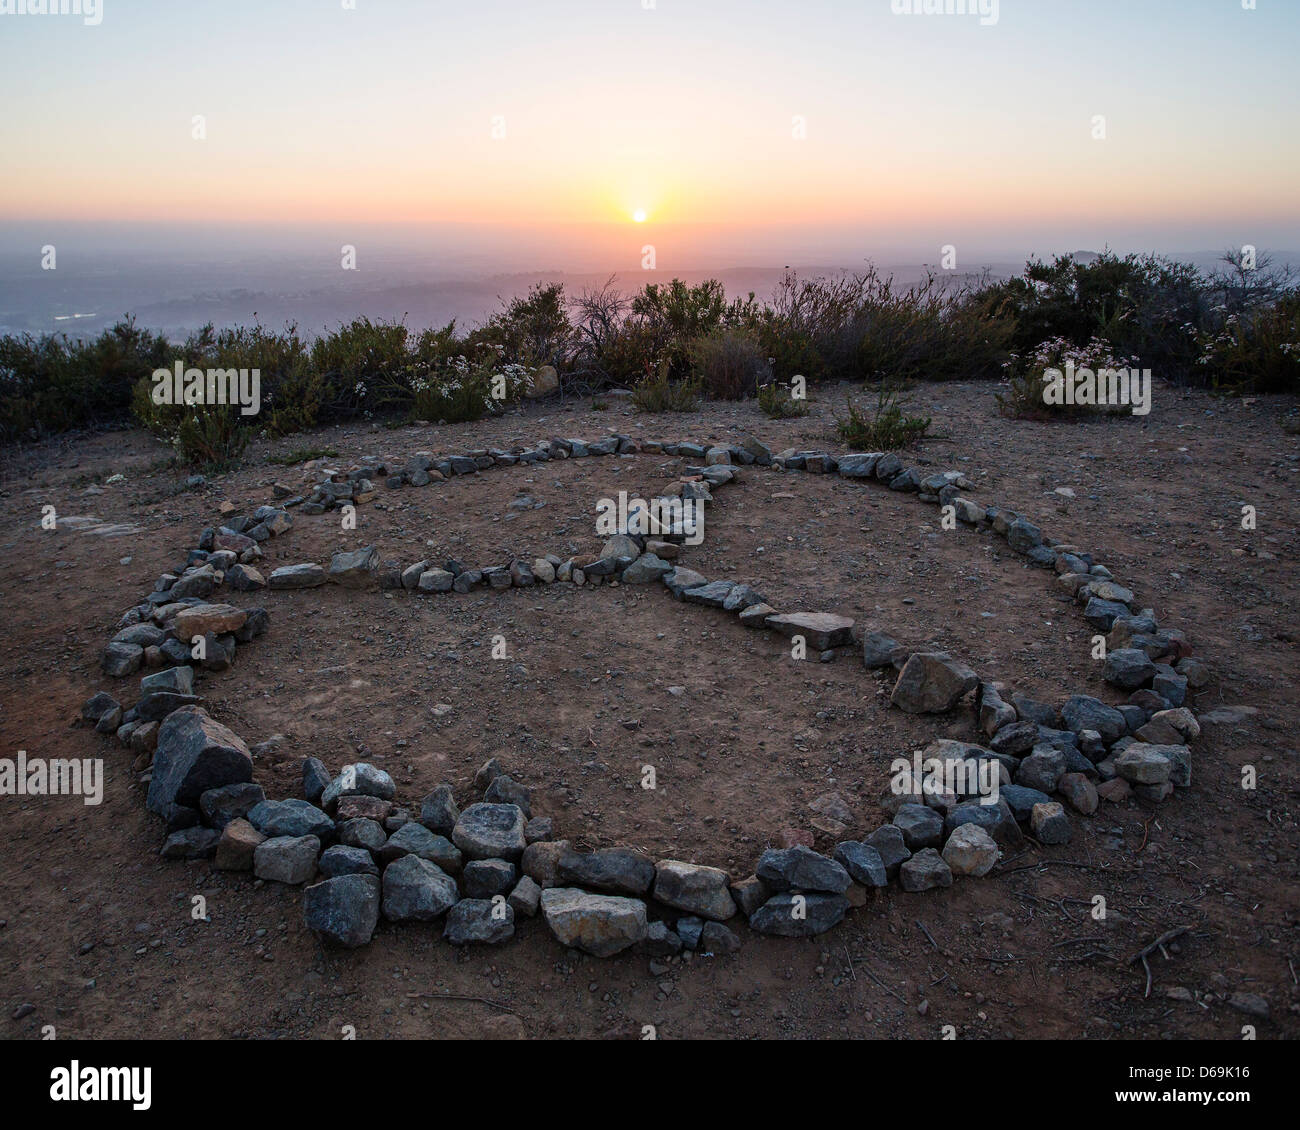 Rocks in peace symbol on cliff - Stock Image